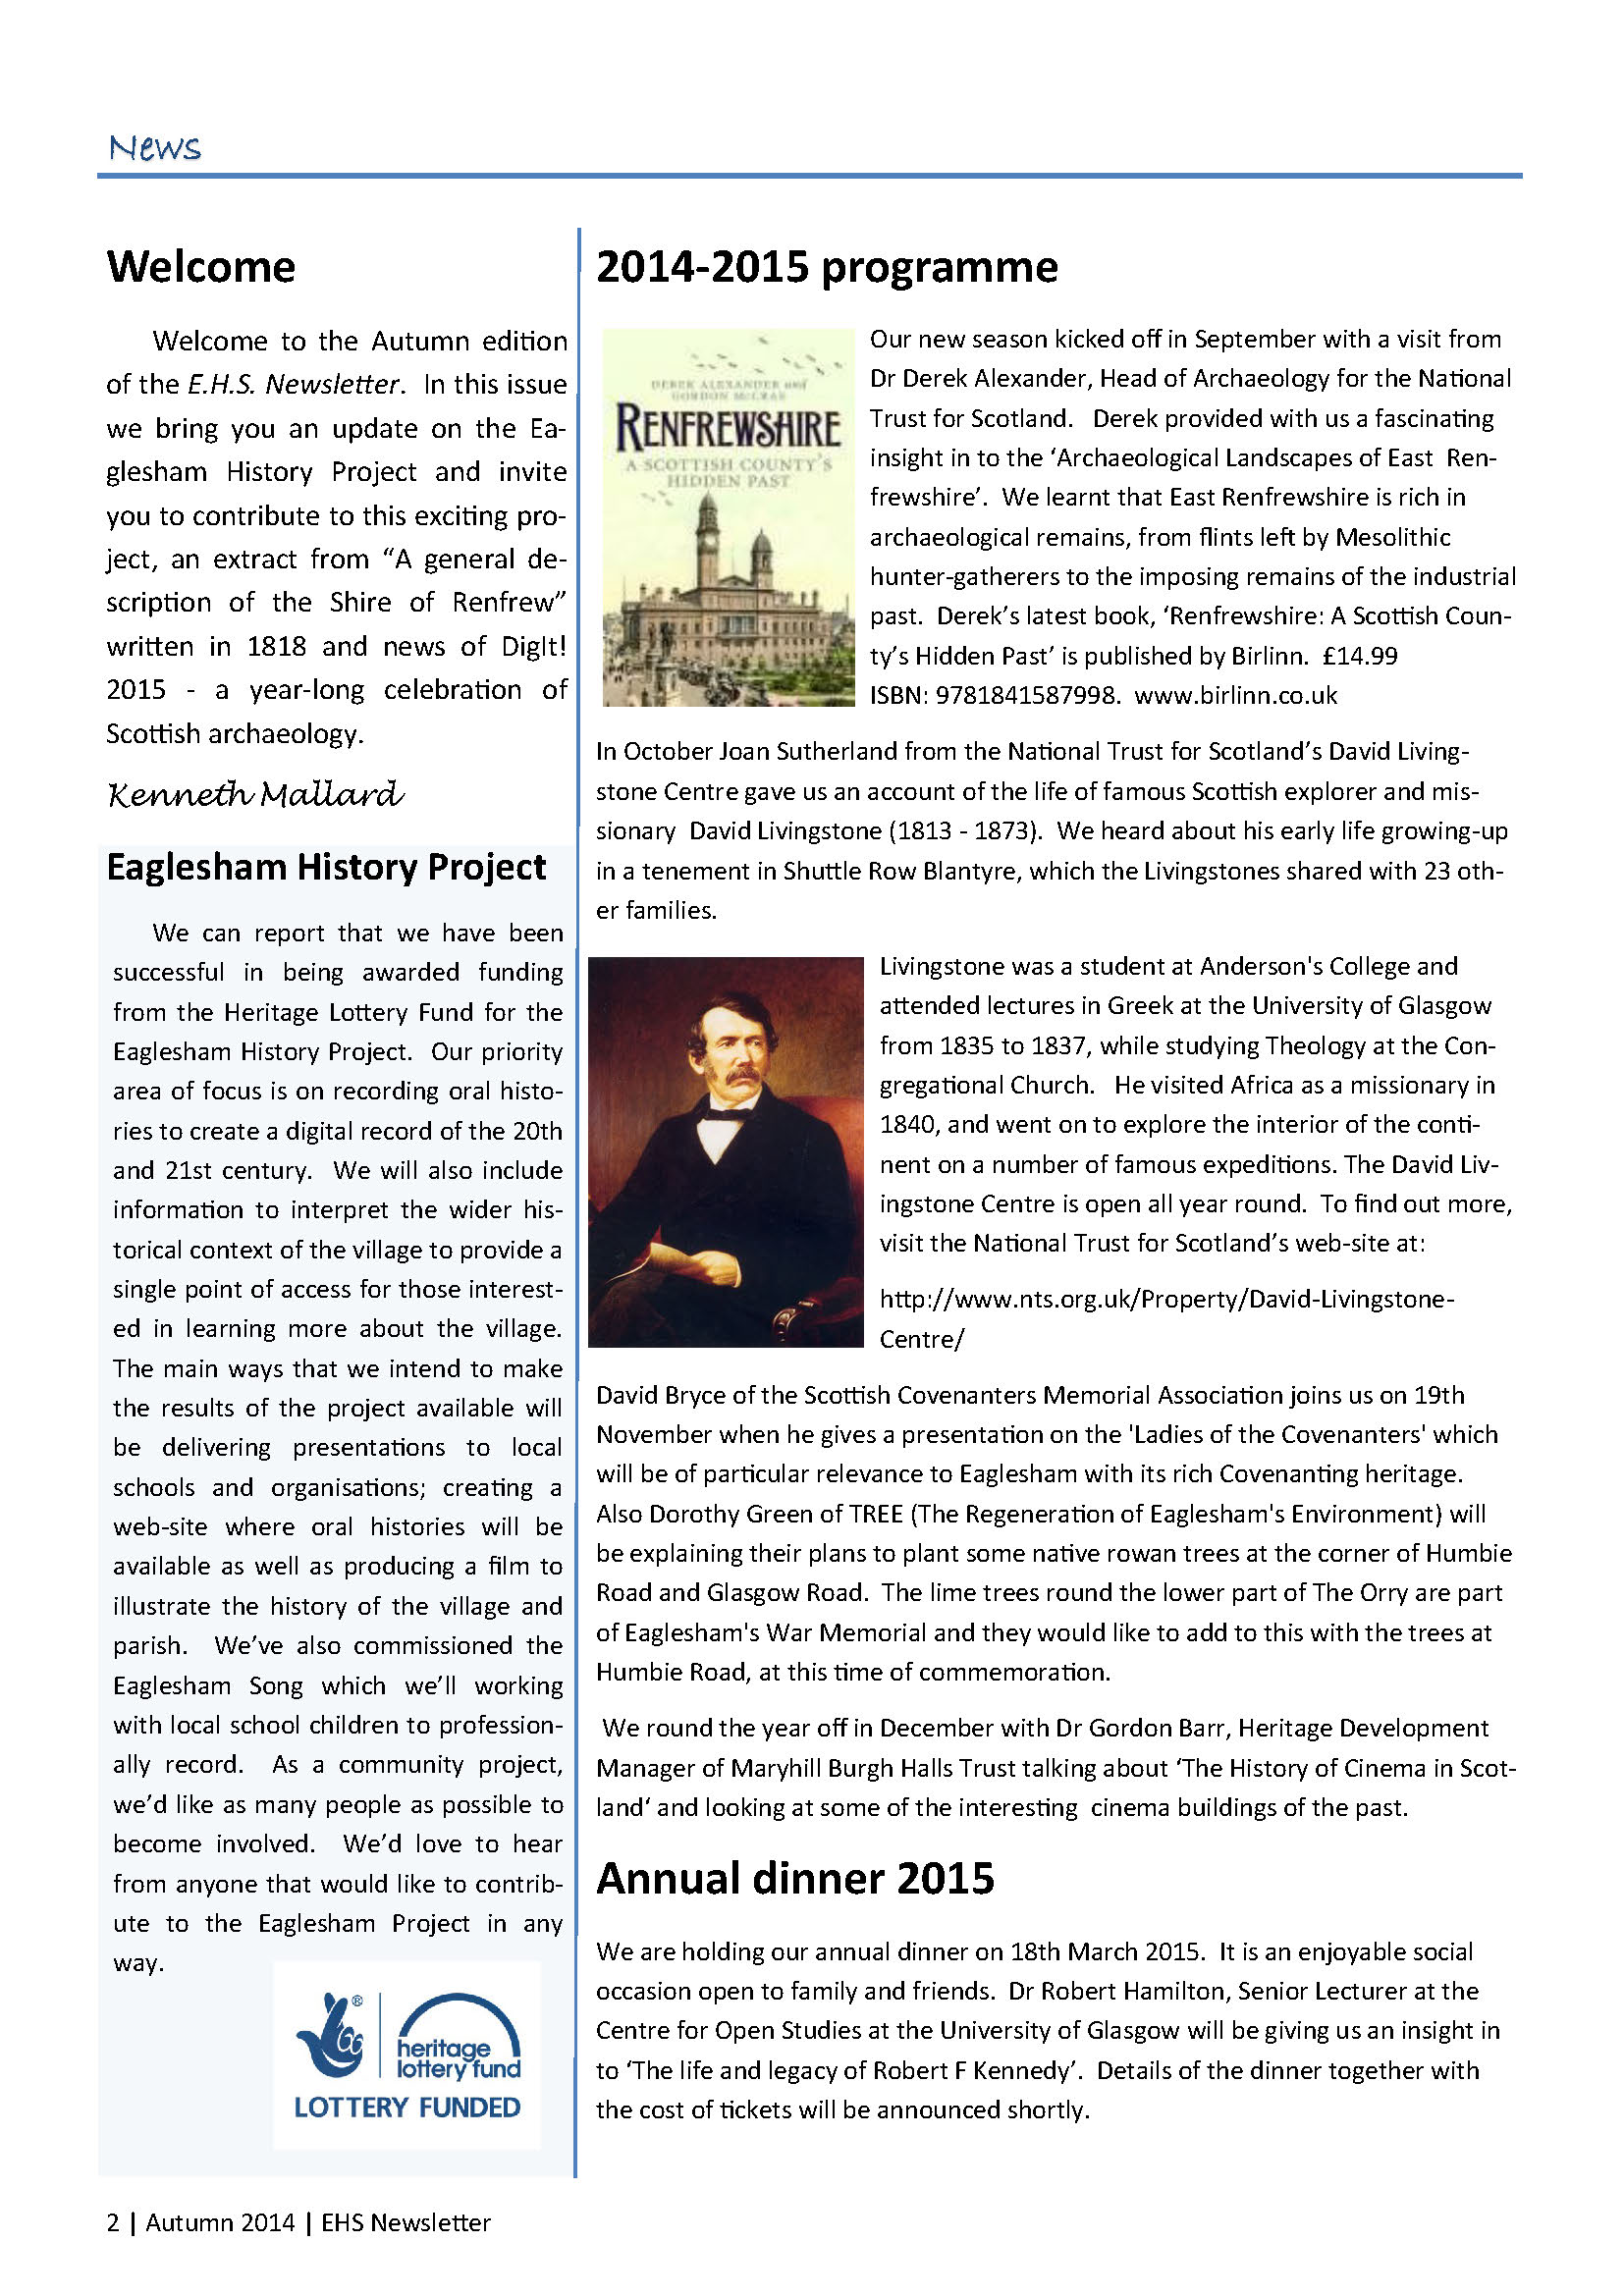 2. EHS Newsletter Autumn 2014 full colour_Page_2